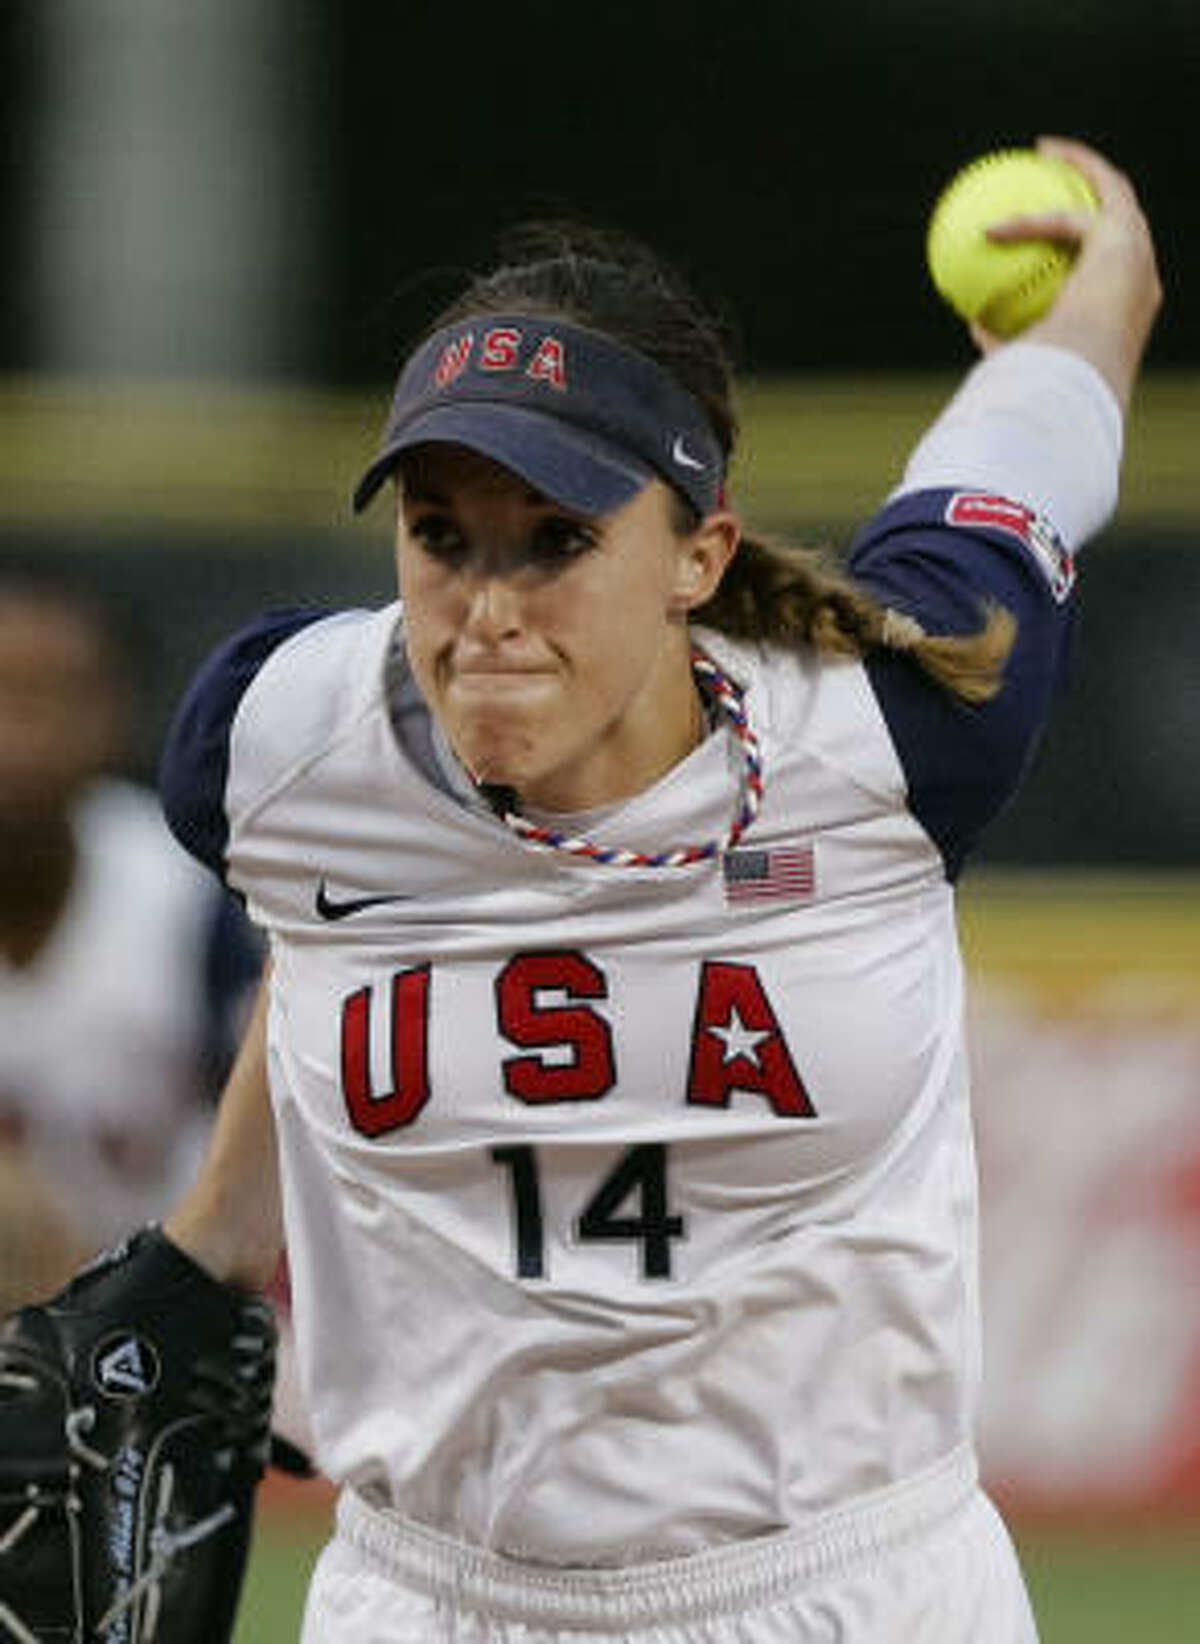 Monica Abbott winds up for a pitch against Australia in the first inning.